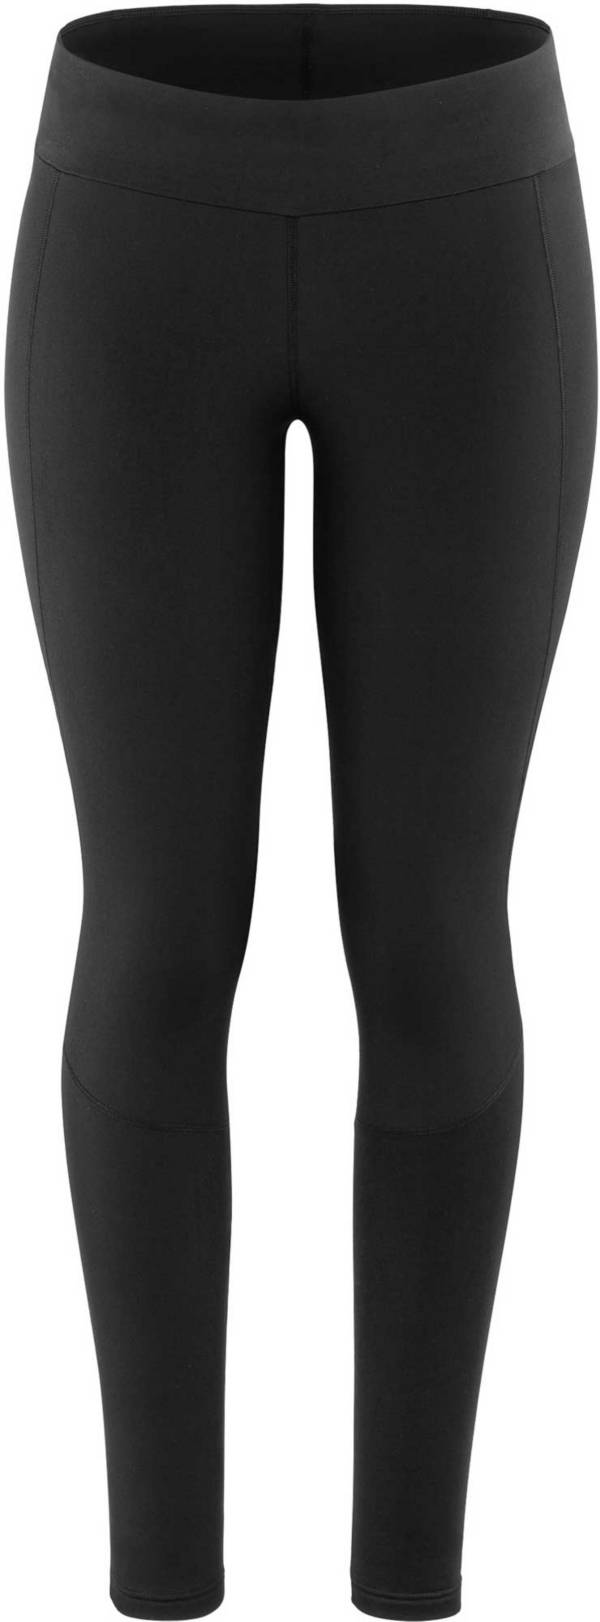 Louis Garneau Women's Stockholm 2 Tights product image